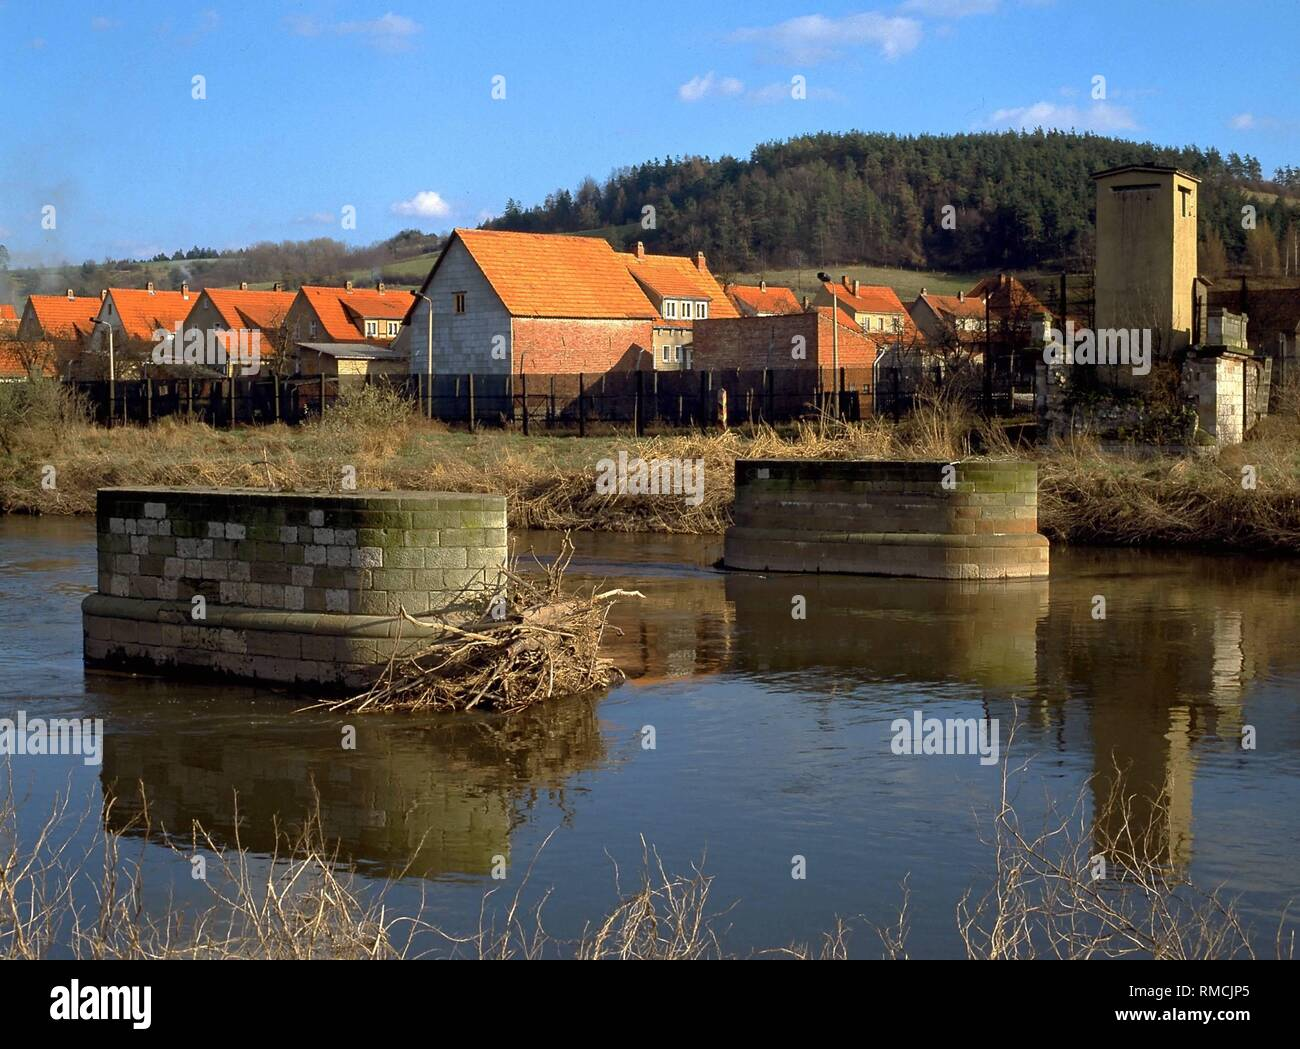 The dismantled bridge on the Werra, beyond the border fence the place Lauchroeden in the GDR. - Stock Image